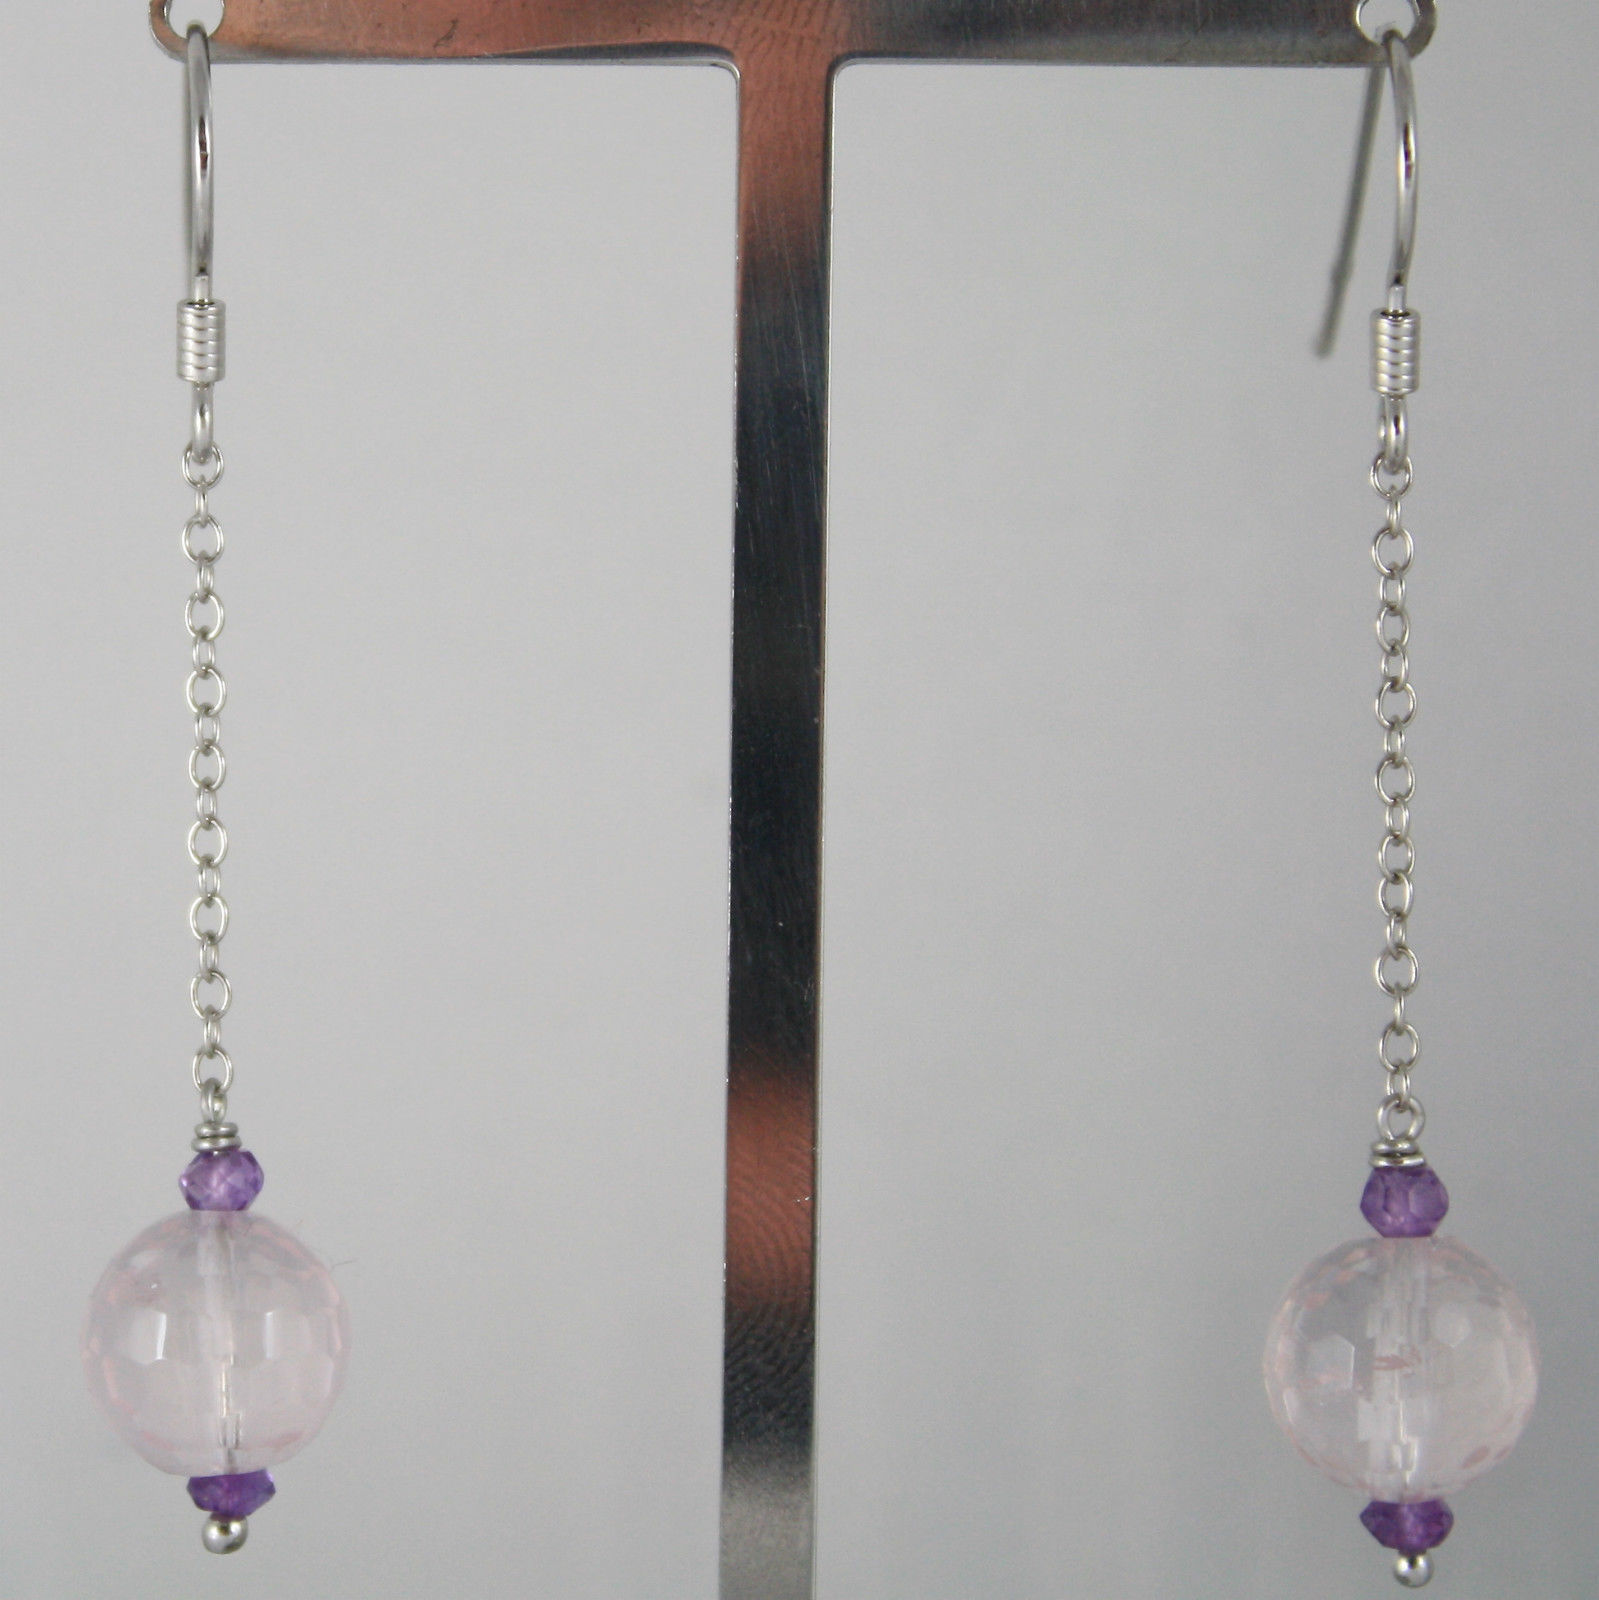 925 SILVER RHODIUM PENDANT EARRINGS, ROSE QUARTZ, AMETHYST